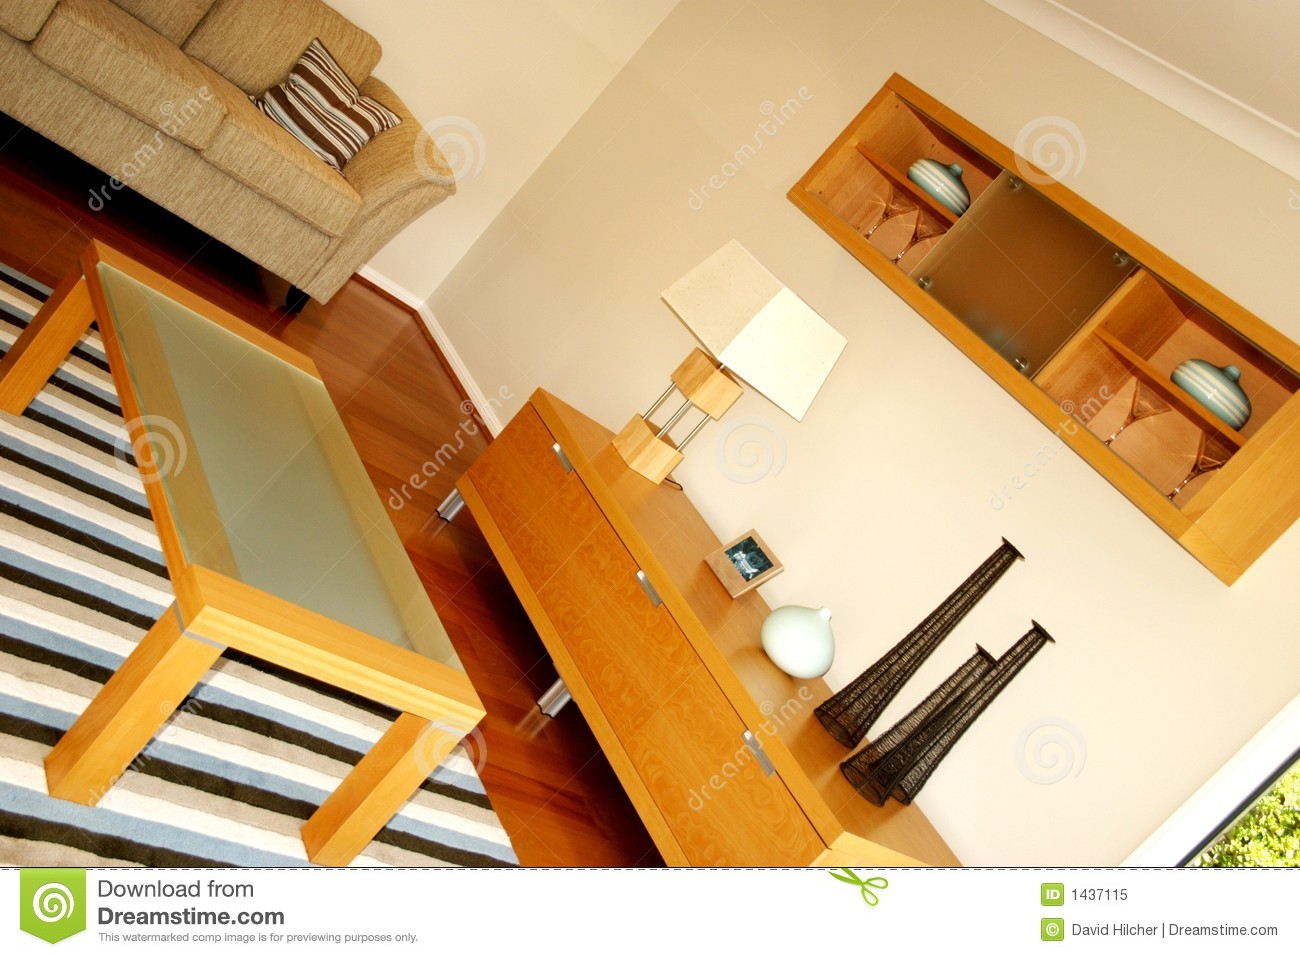 Feng shui royalty free stock photo image 1437115 for Feng shui in building a house